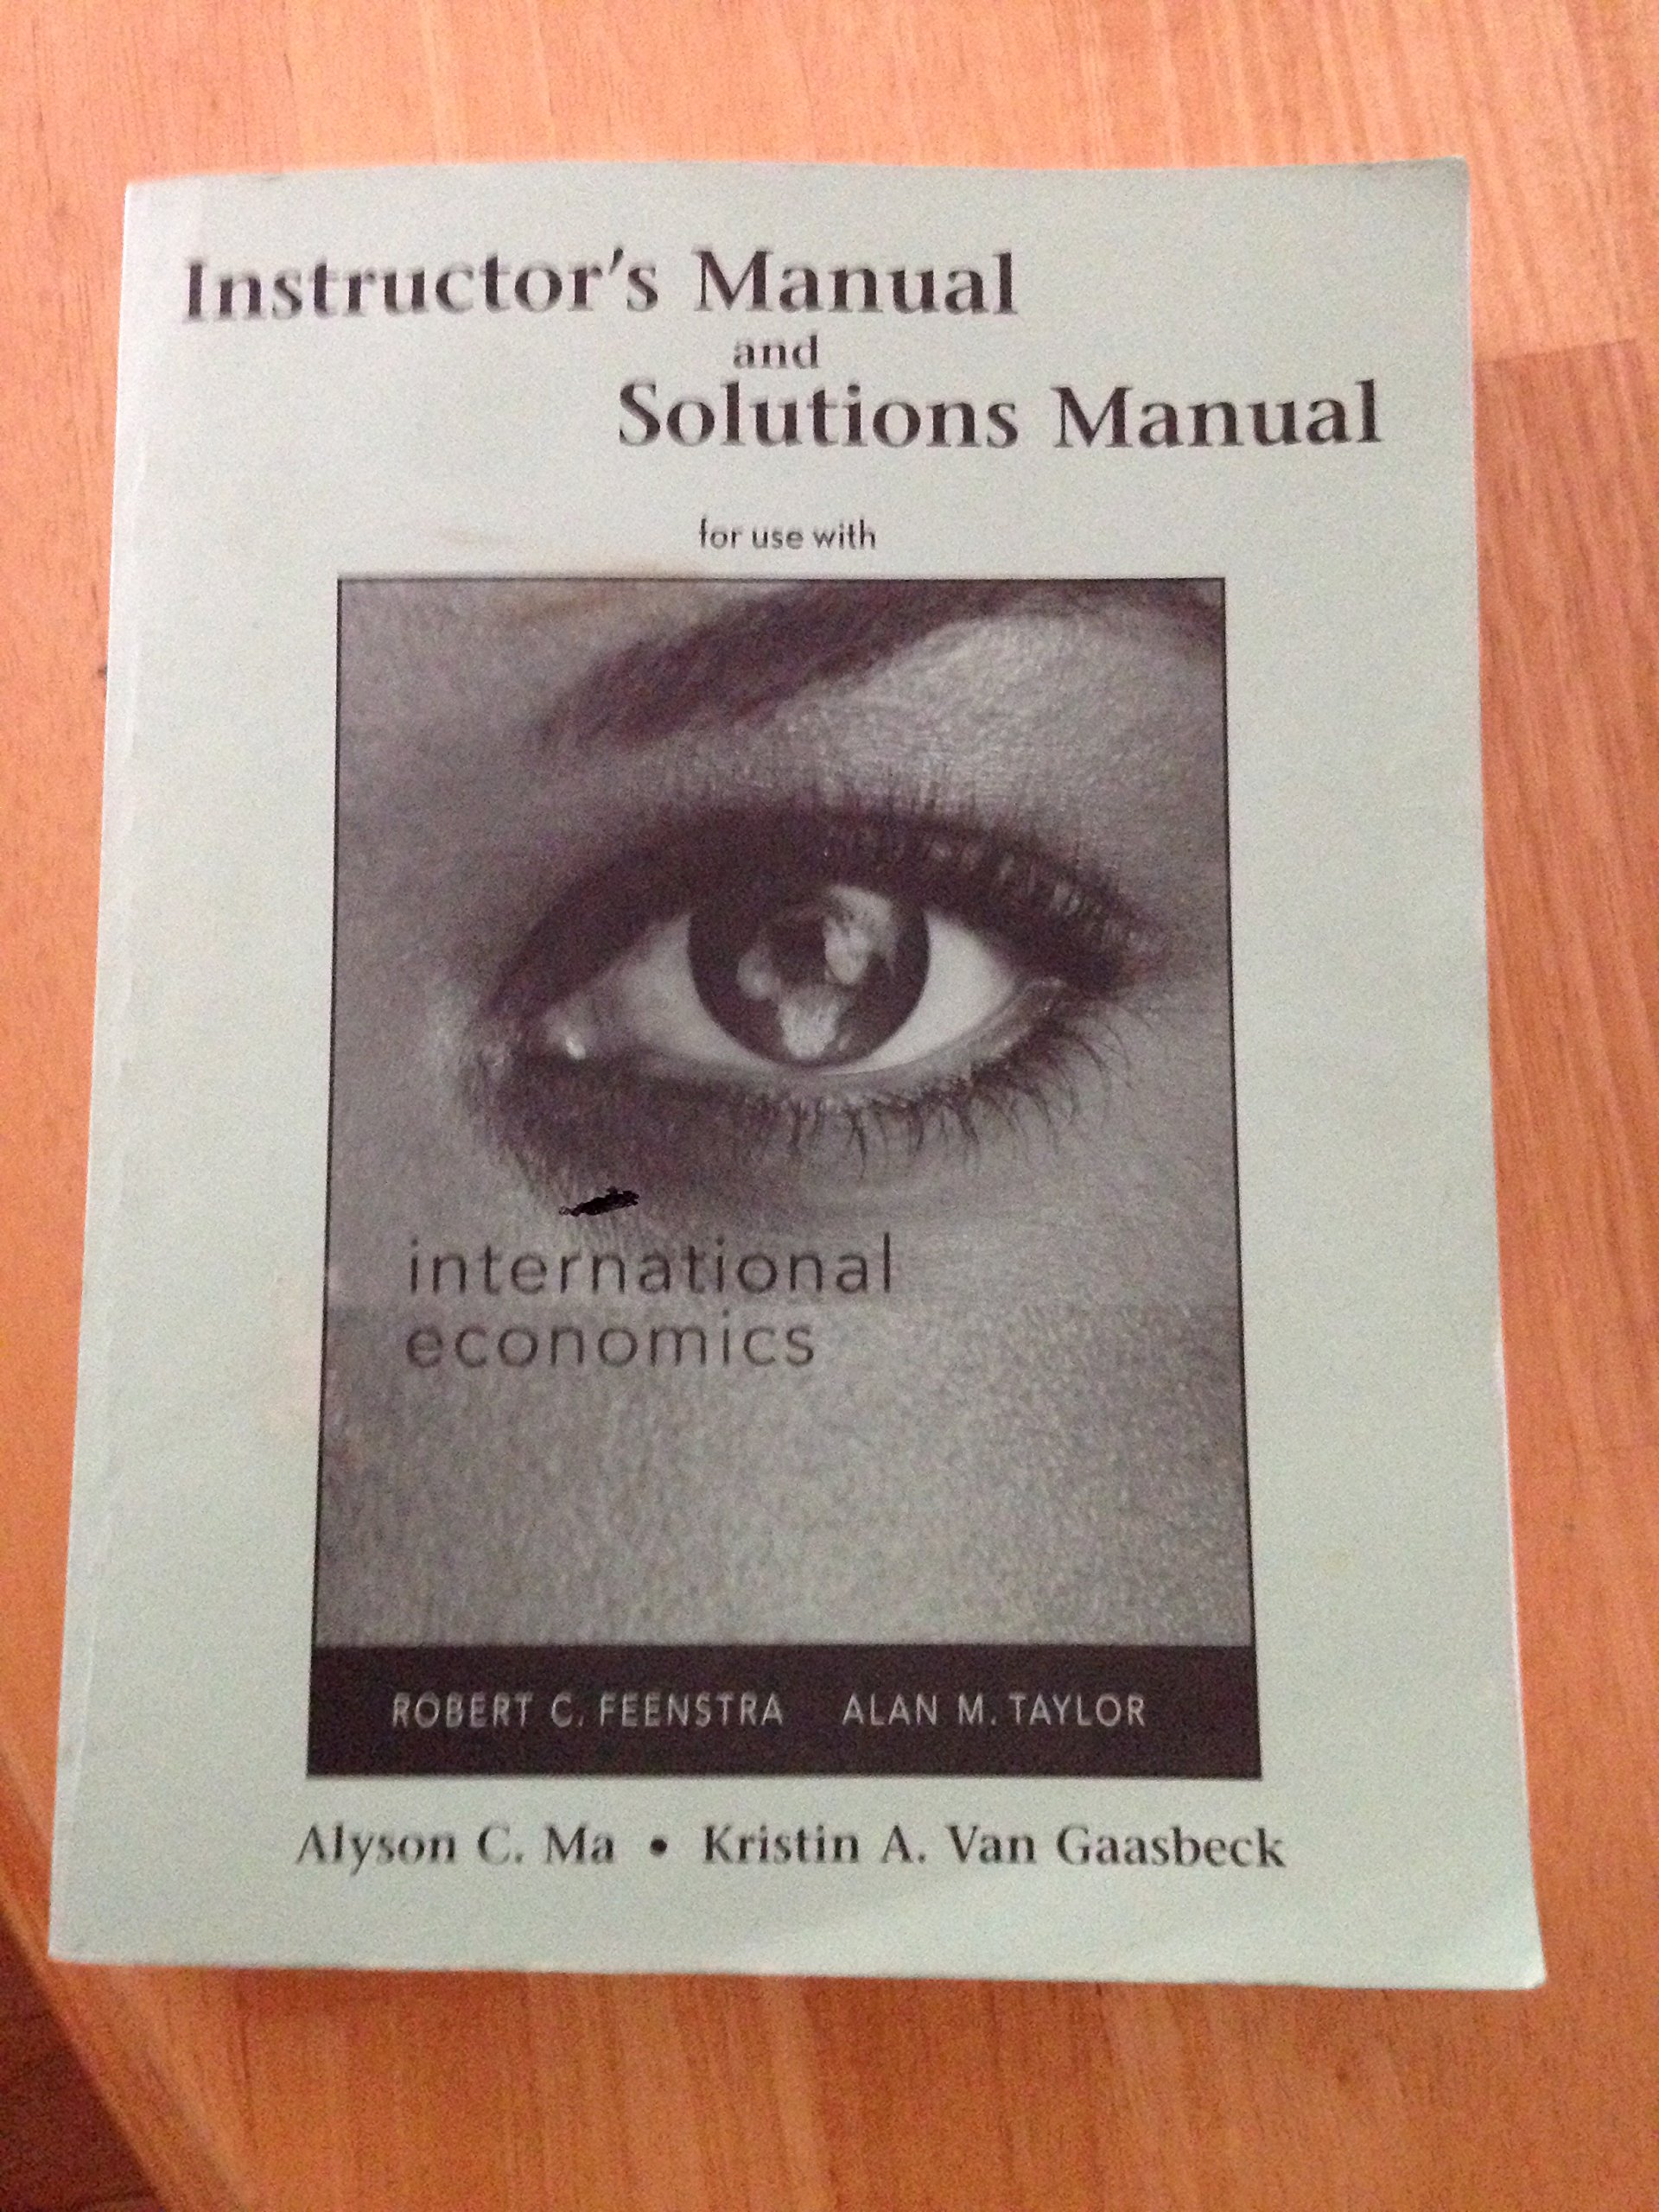 Instructor's Manual and Solutions Manual for use with International  Economics by Robert C. Feenstra and Alan M. Taylor: Alyson C. Ma, Kristin  A. Van ...